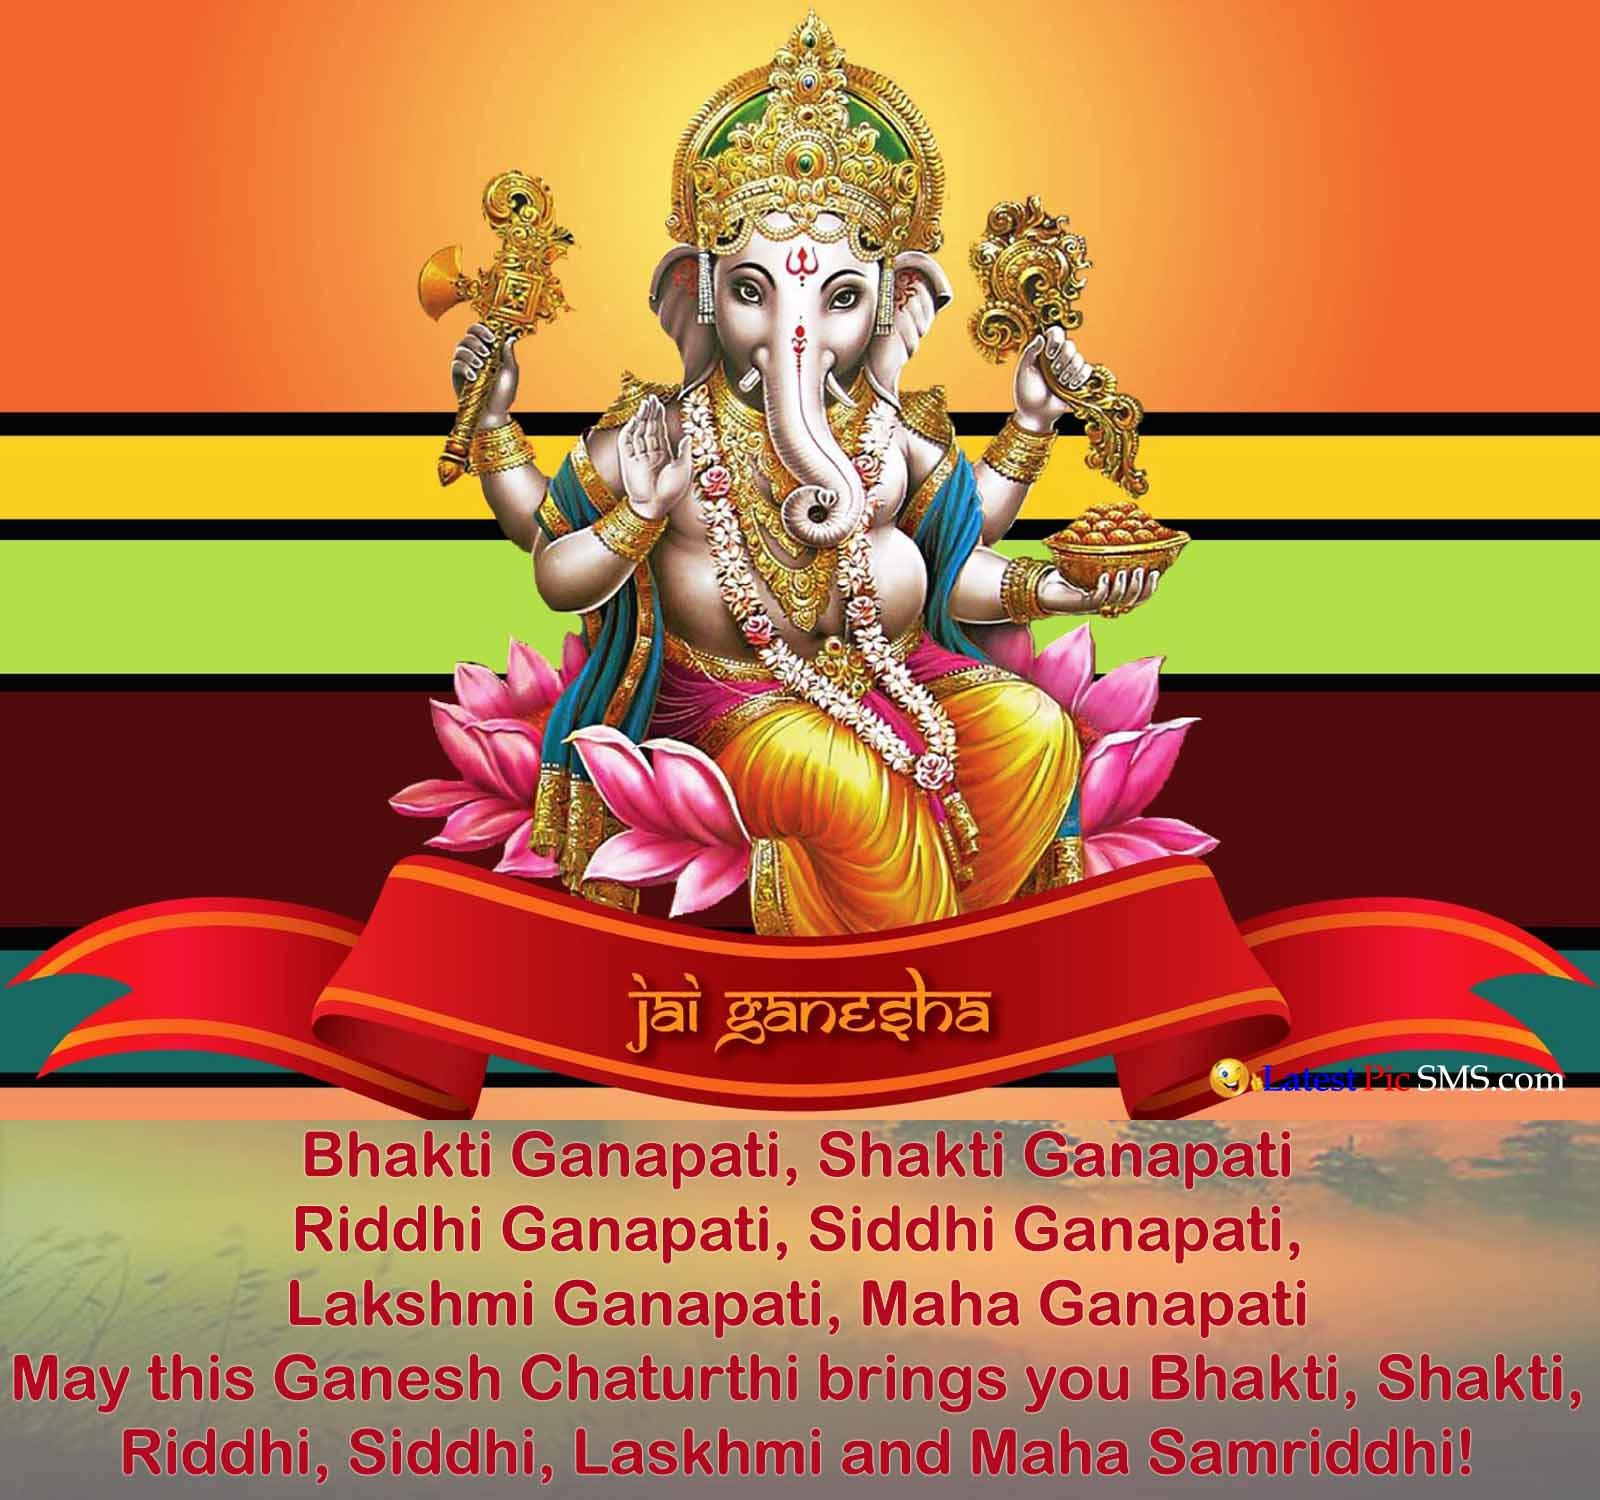 ganesh chaturthi special image quote